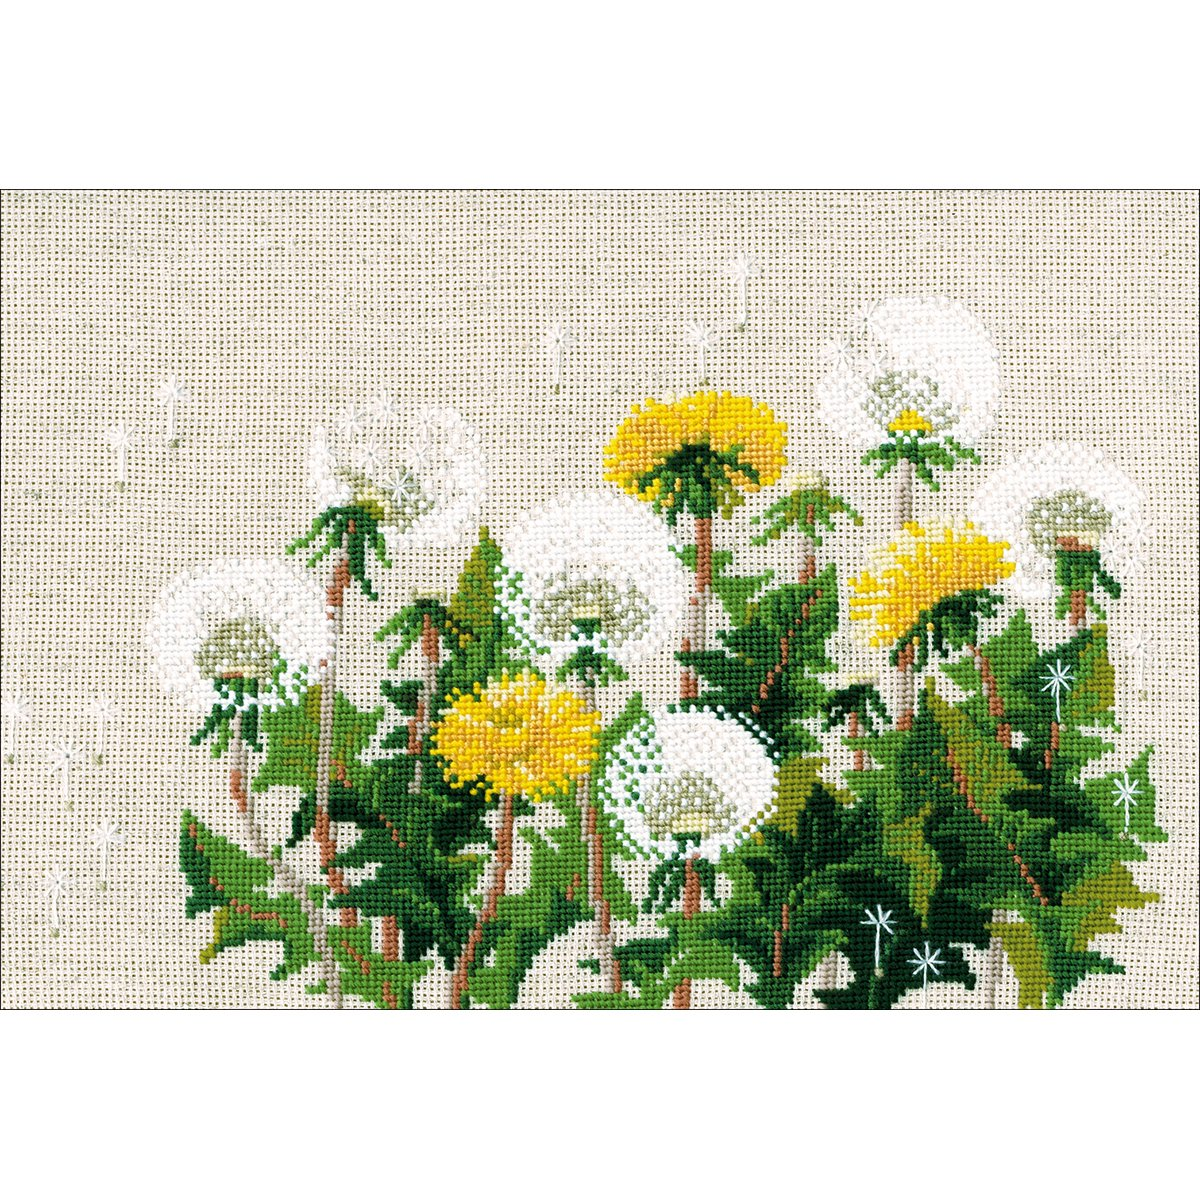 Dandelions Counted Cross Stitch Kit-11.75x8.25 15 Count RIOLIS R807